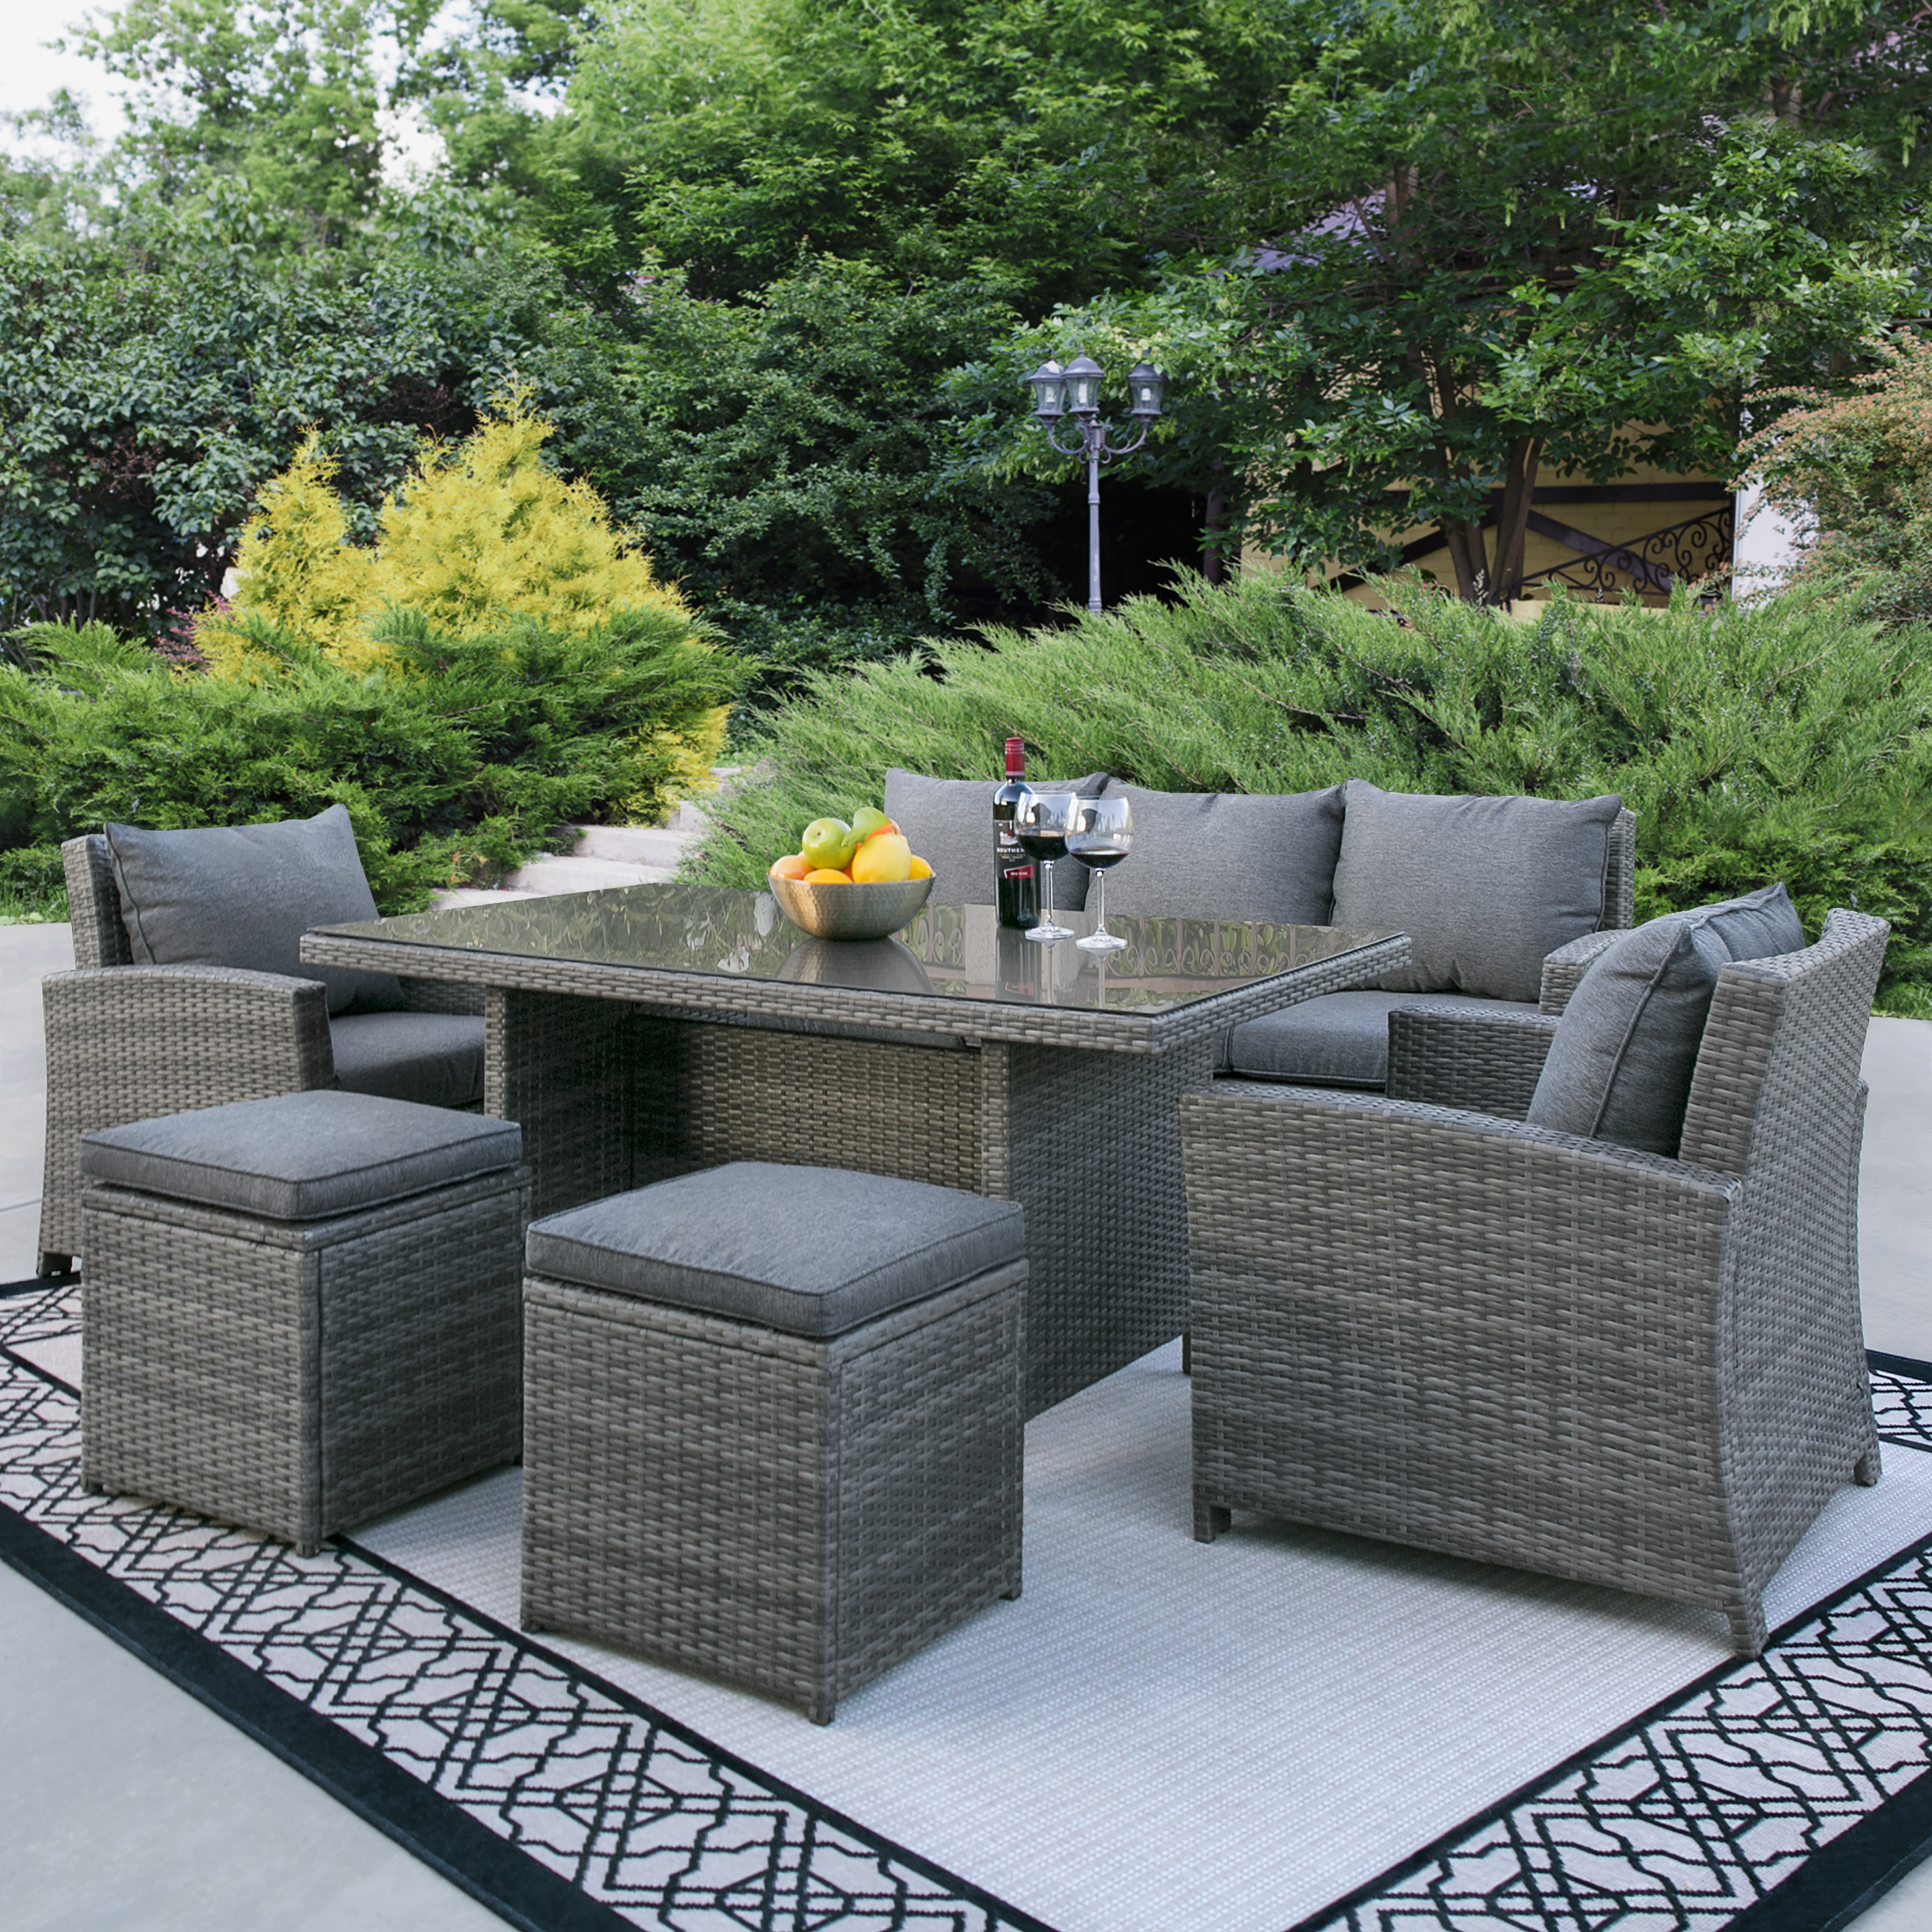 Best Choice Products Complete Outdoor Living Patio Furniture 6 Piece